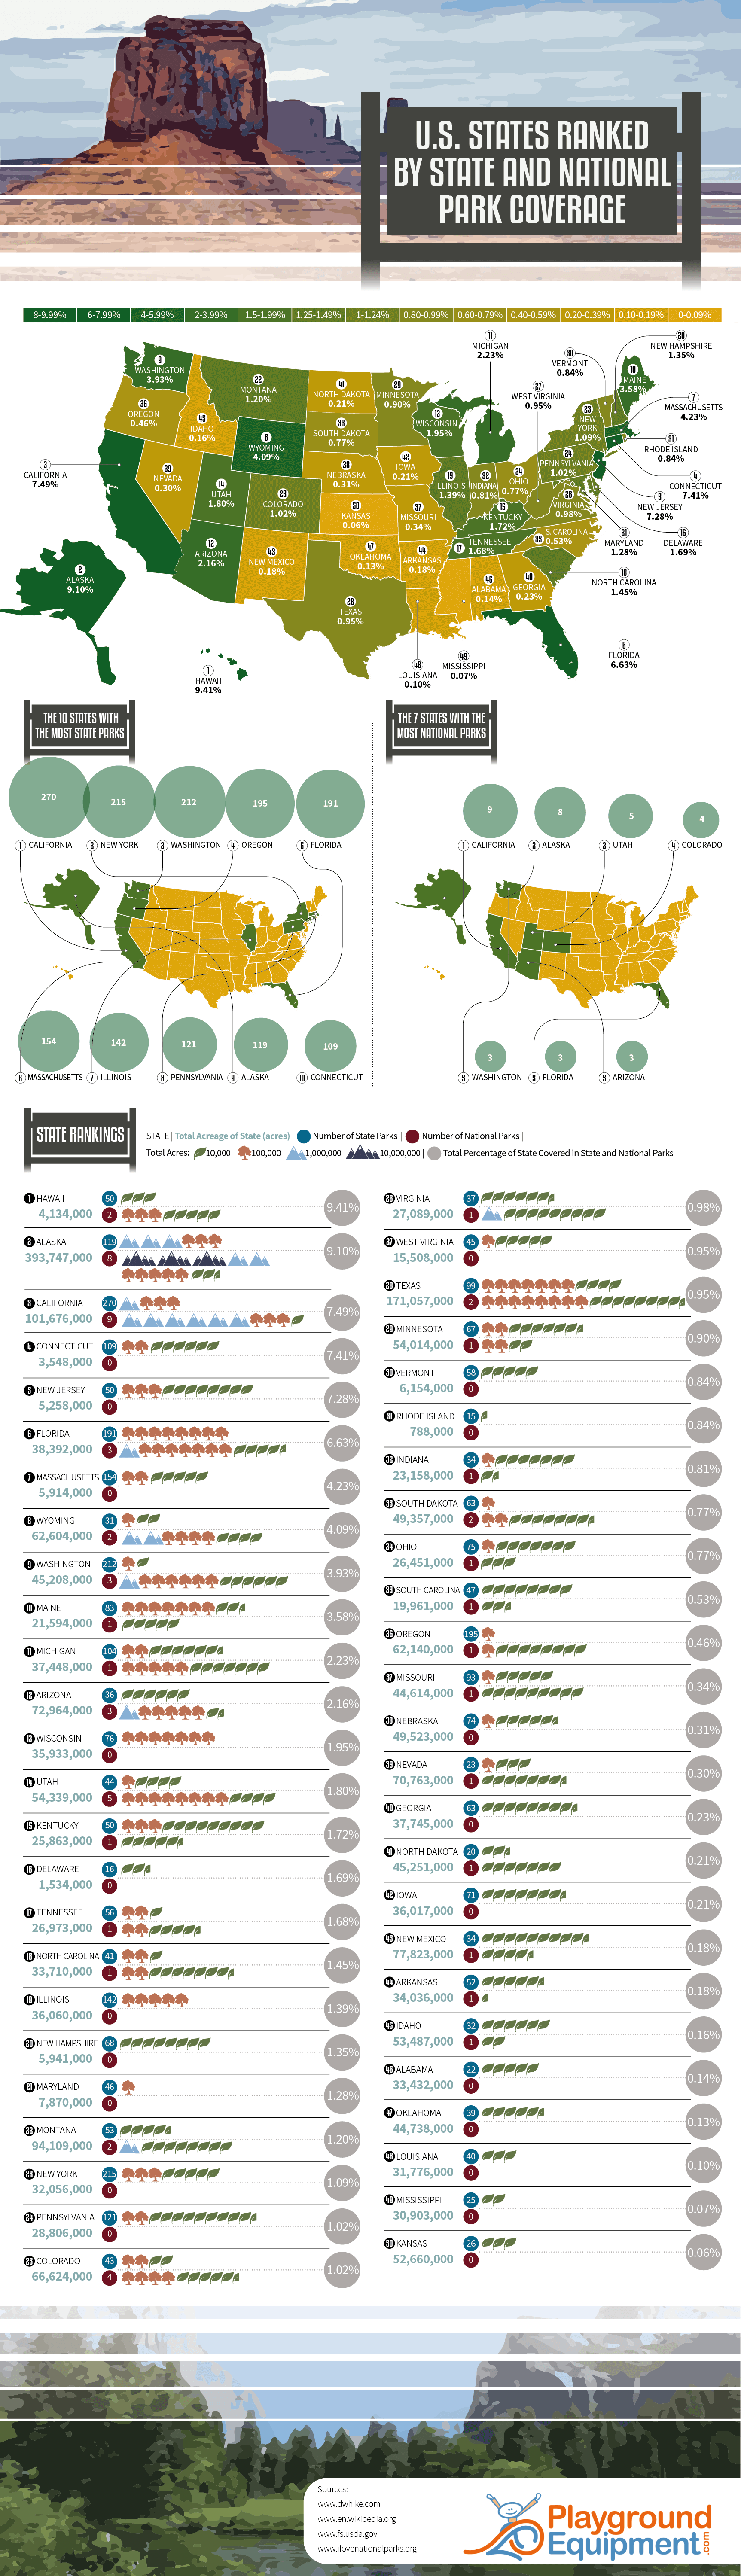 US states ranked by state national park coverage